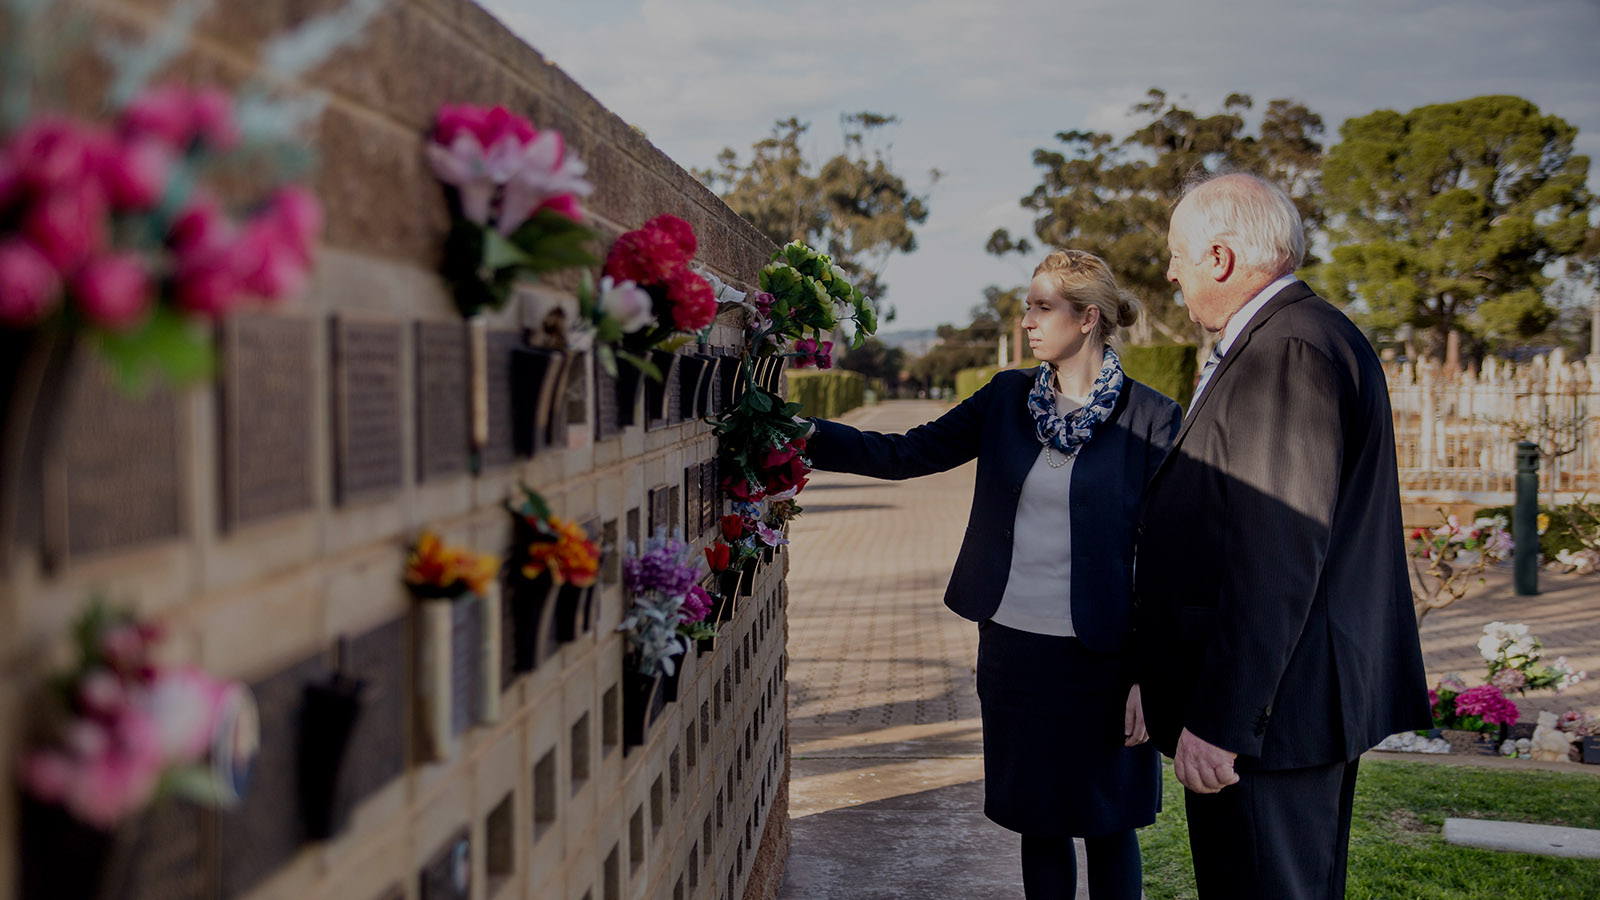 coffin taylor and forgie funerals funeral chapel gawler south east west evanston garden park buchfelde bibaringa reid willaston hewitt home arranging undertaking planning